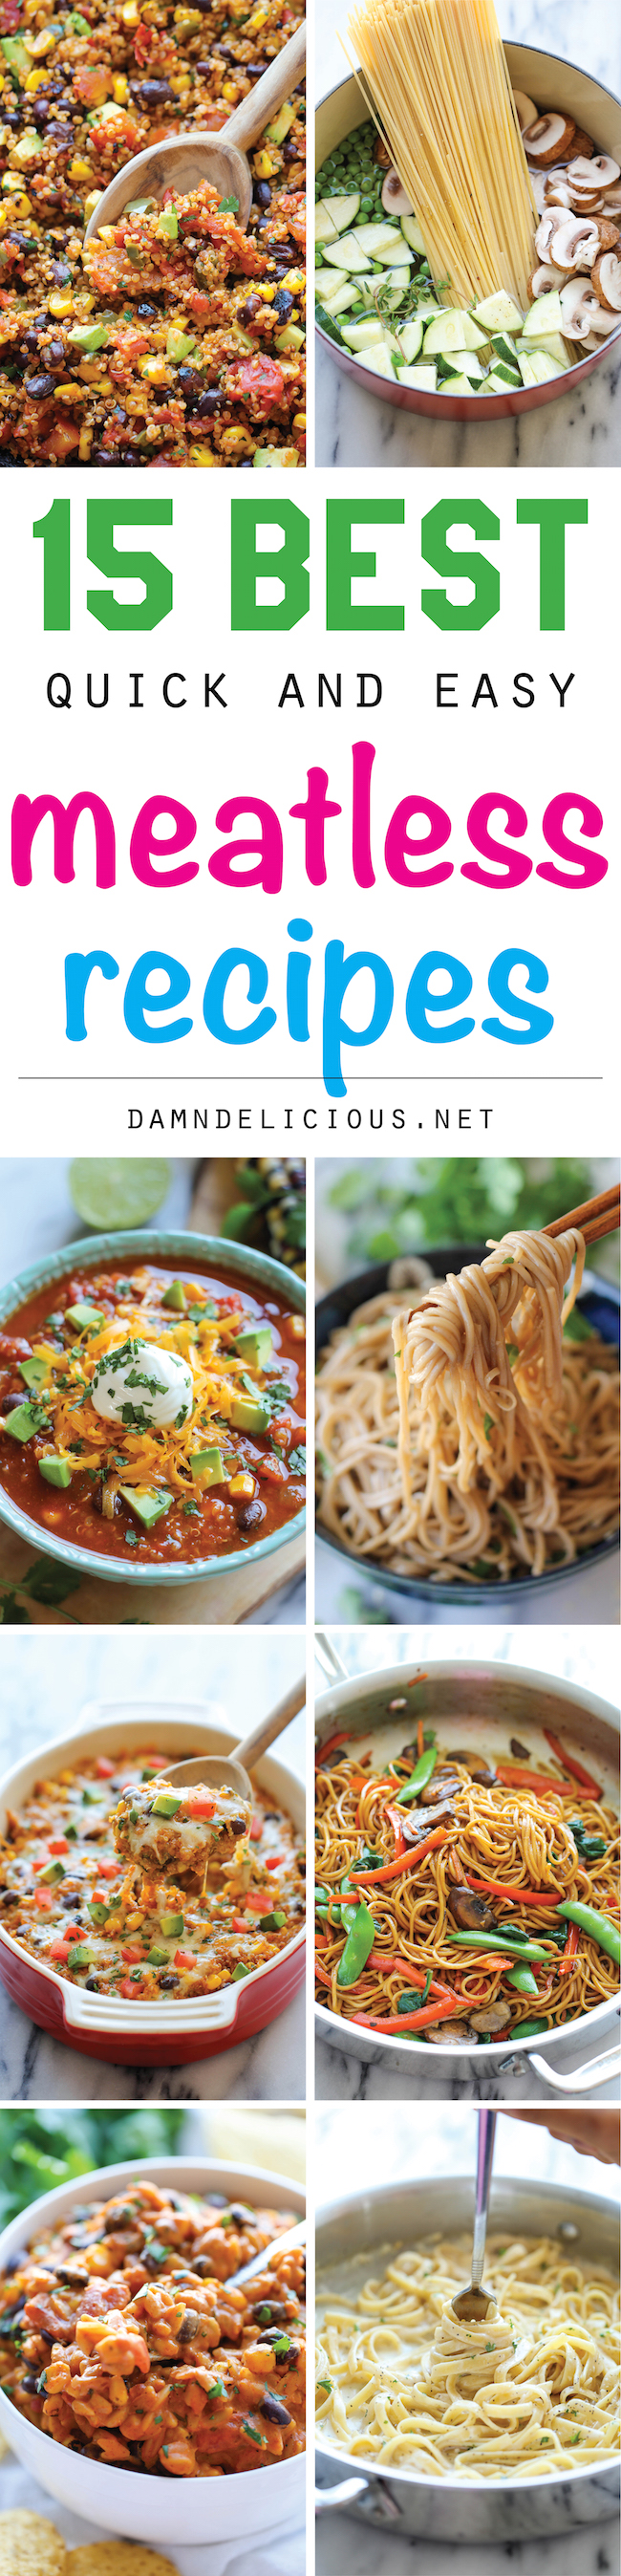 15 Best Quick And Easy Meatless Recipes Damn Delicious